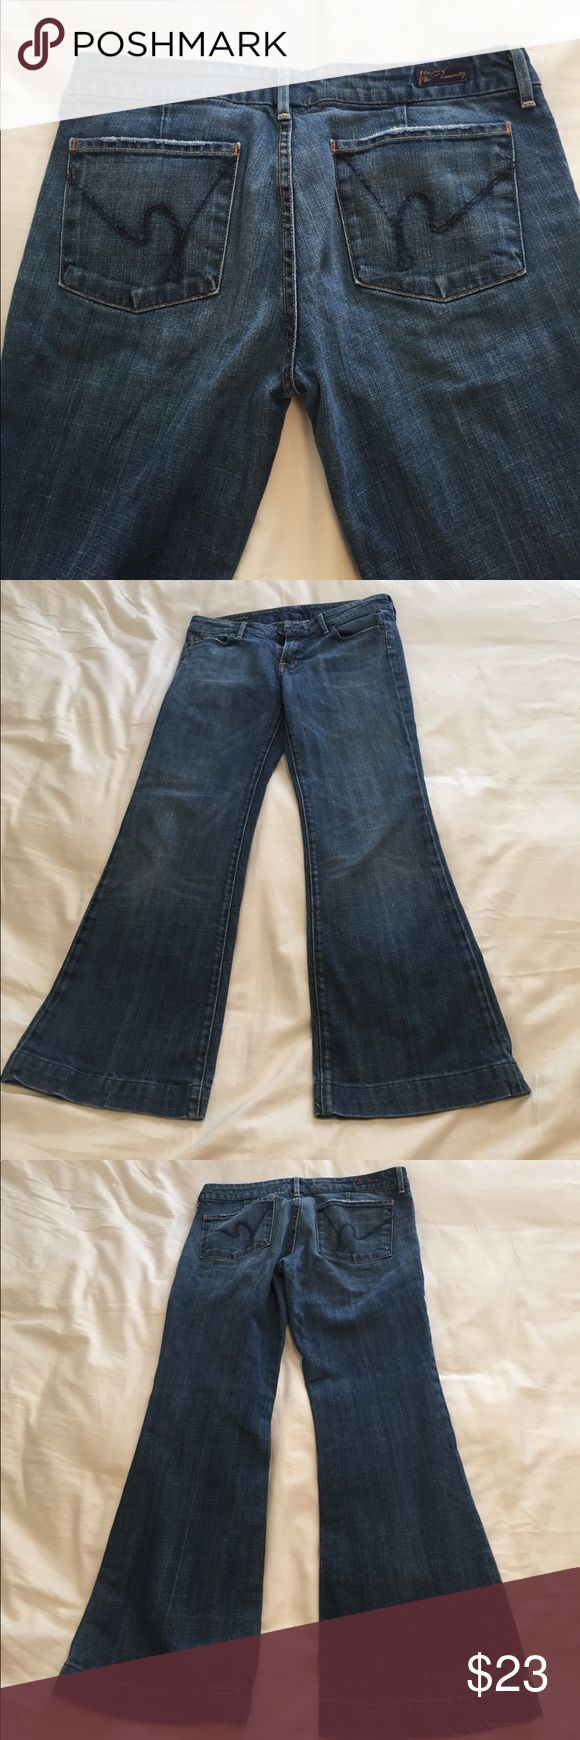 🎉Final Sale! Citizens for Humanity Faye 003 These are a shorter leg, not regular length, Low Waist Full Leg jeans. Flare out at ankle, would make cute clam digger cuffed for normal height as well Citizens Of Humanity Jeans Ankle & Cropped